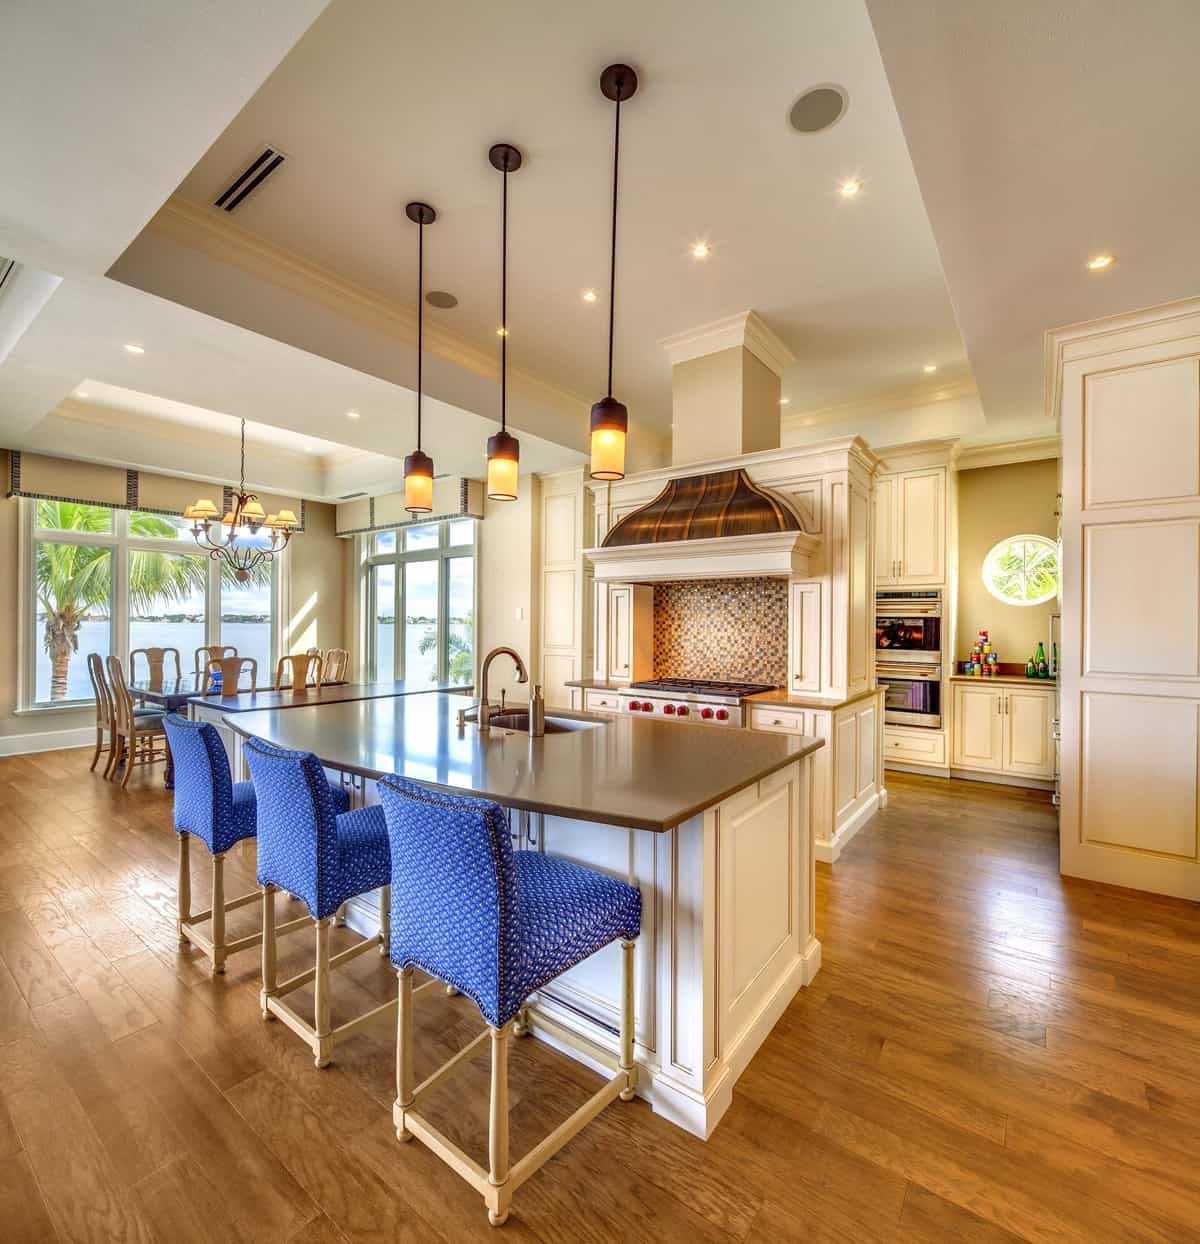 Contemporary Kitchen Chairs In Bright Blue Hue Color (View 13 of 15)